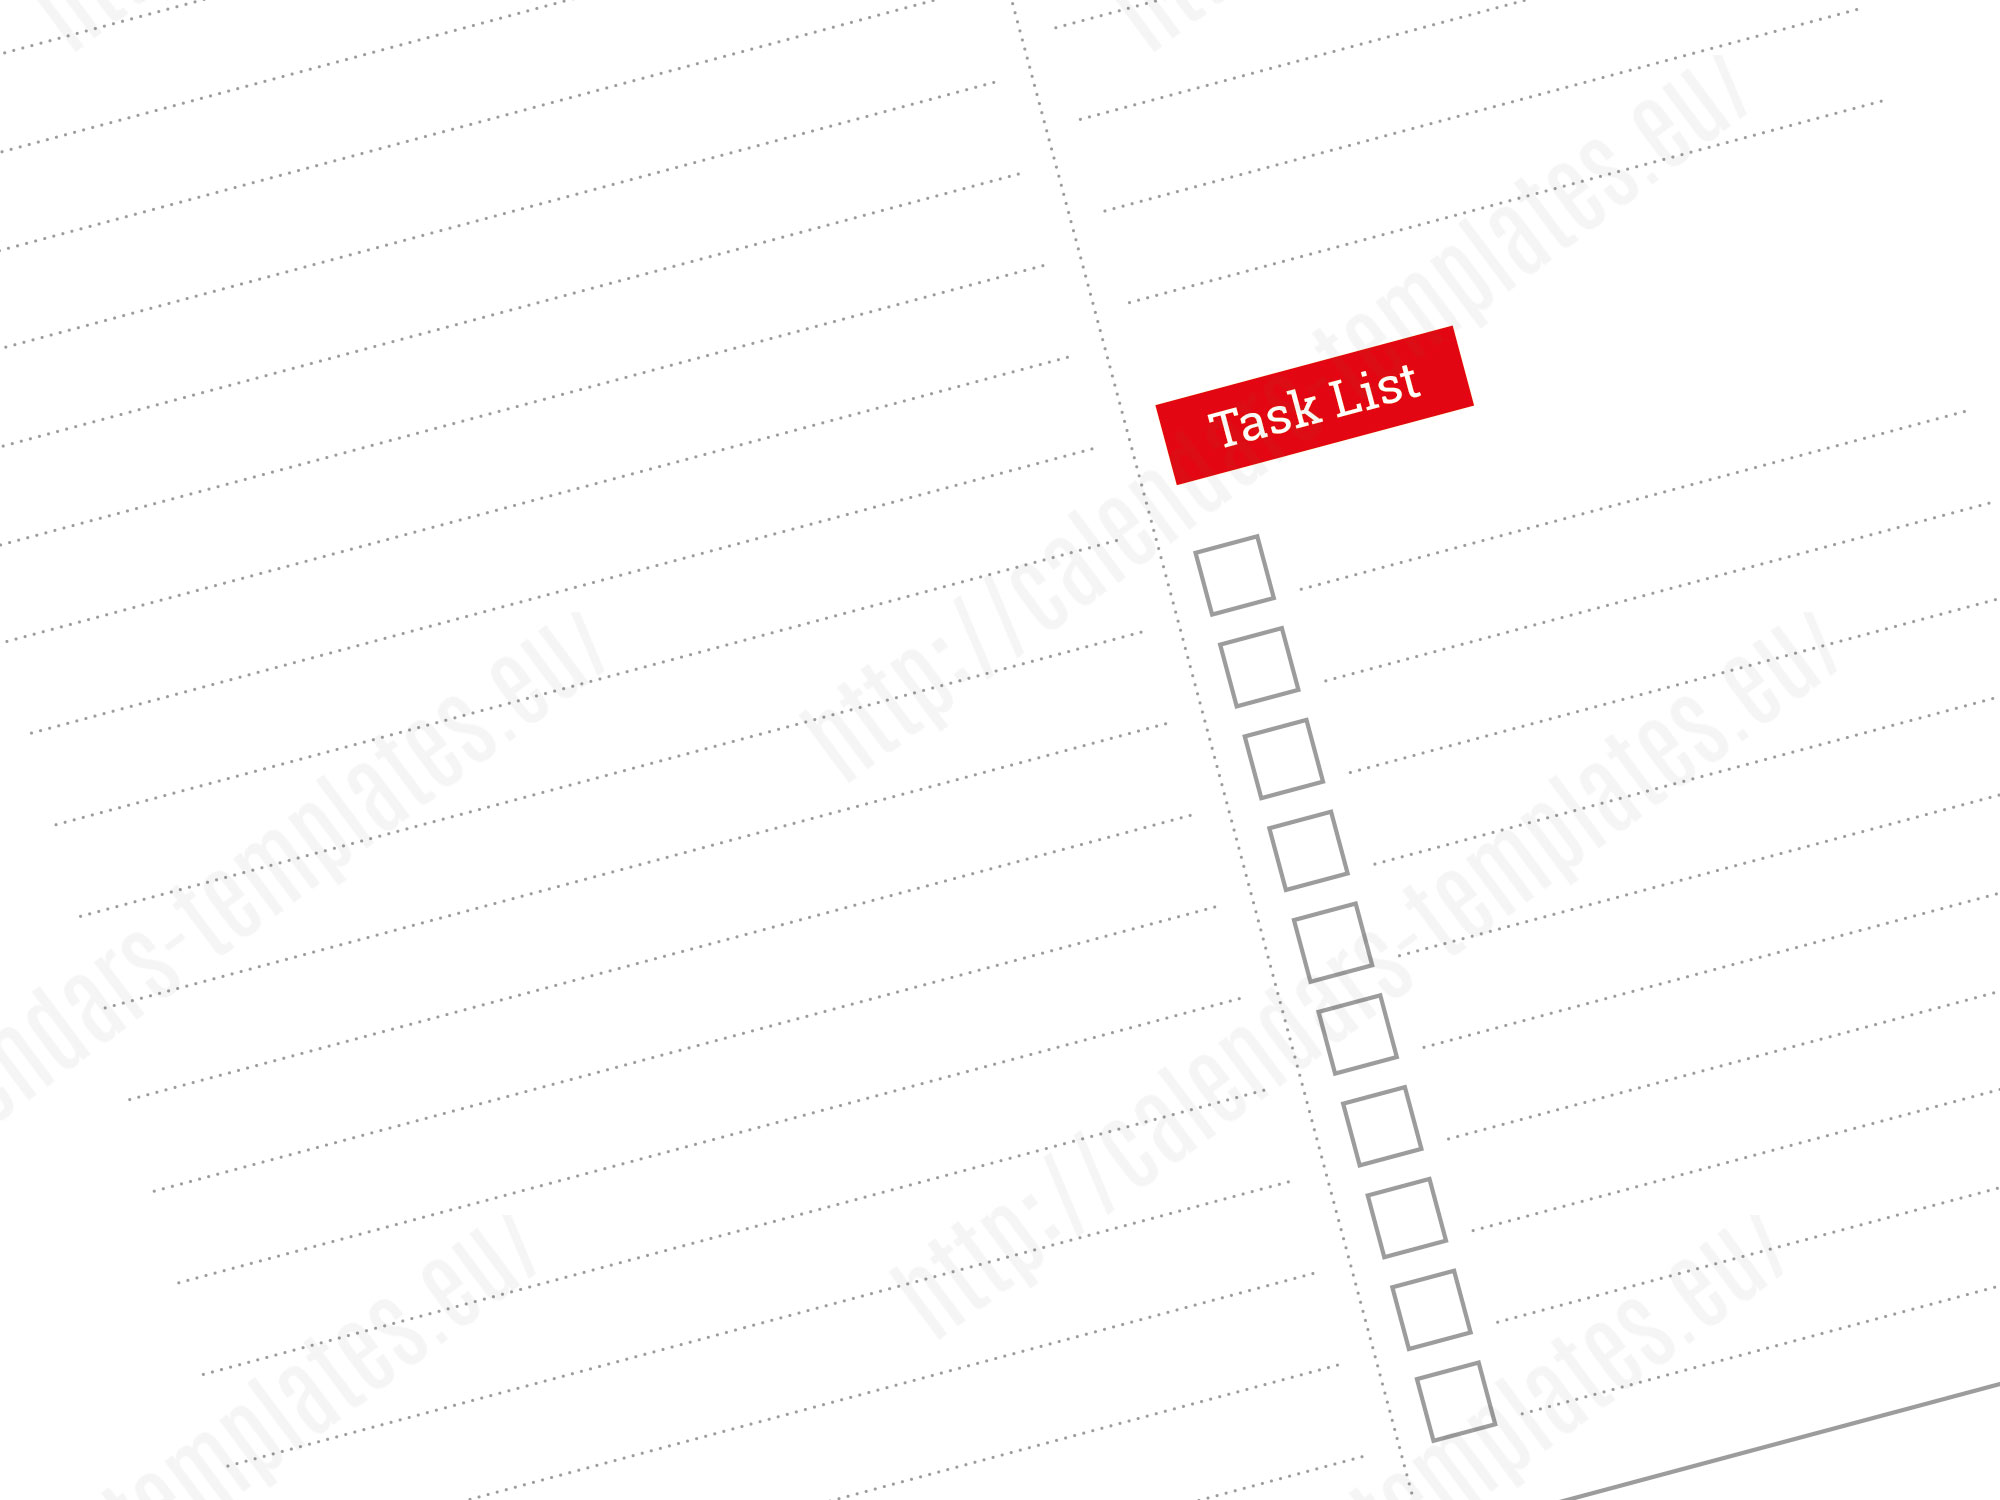 Weekly Calendar Indesign Template : Daily planner template with image in pdf and indesign